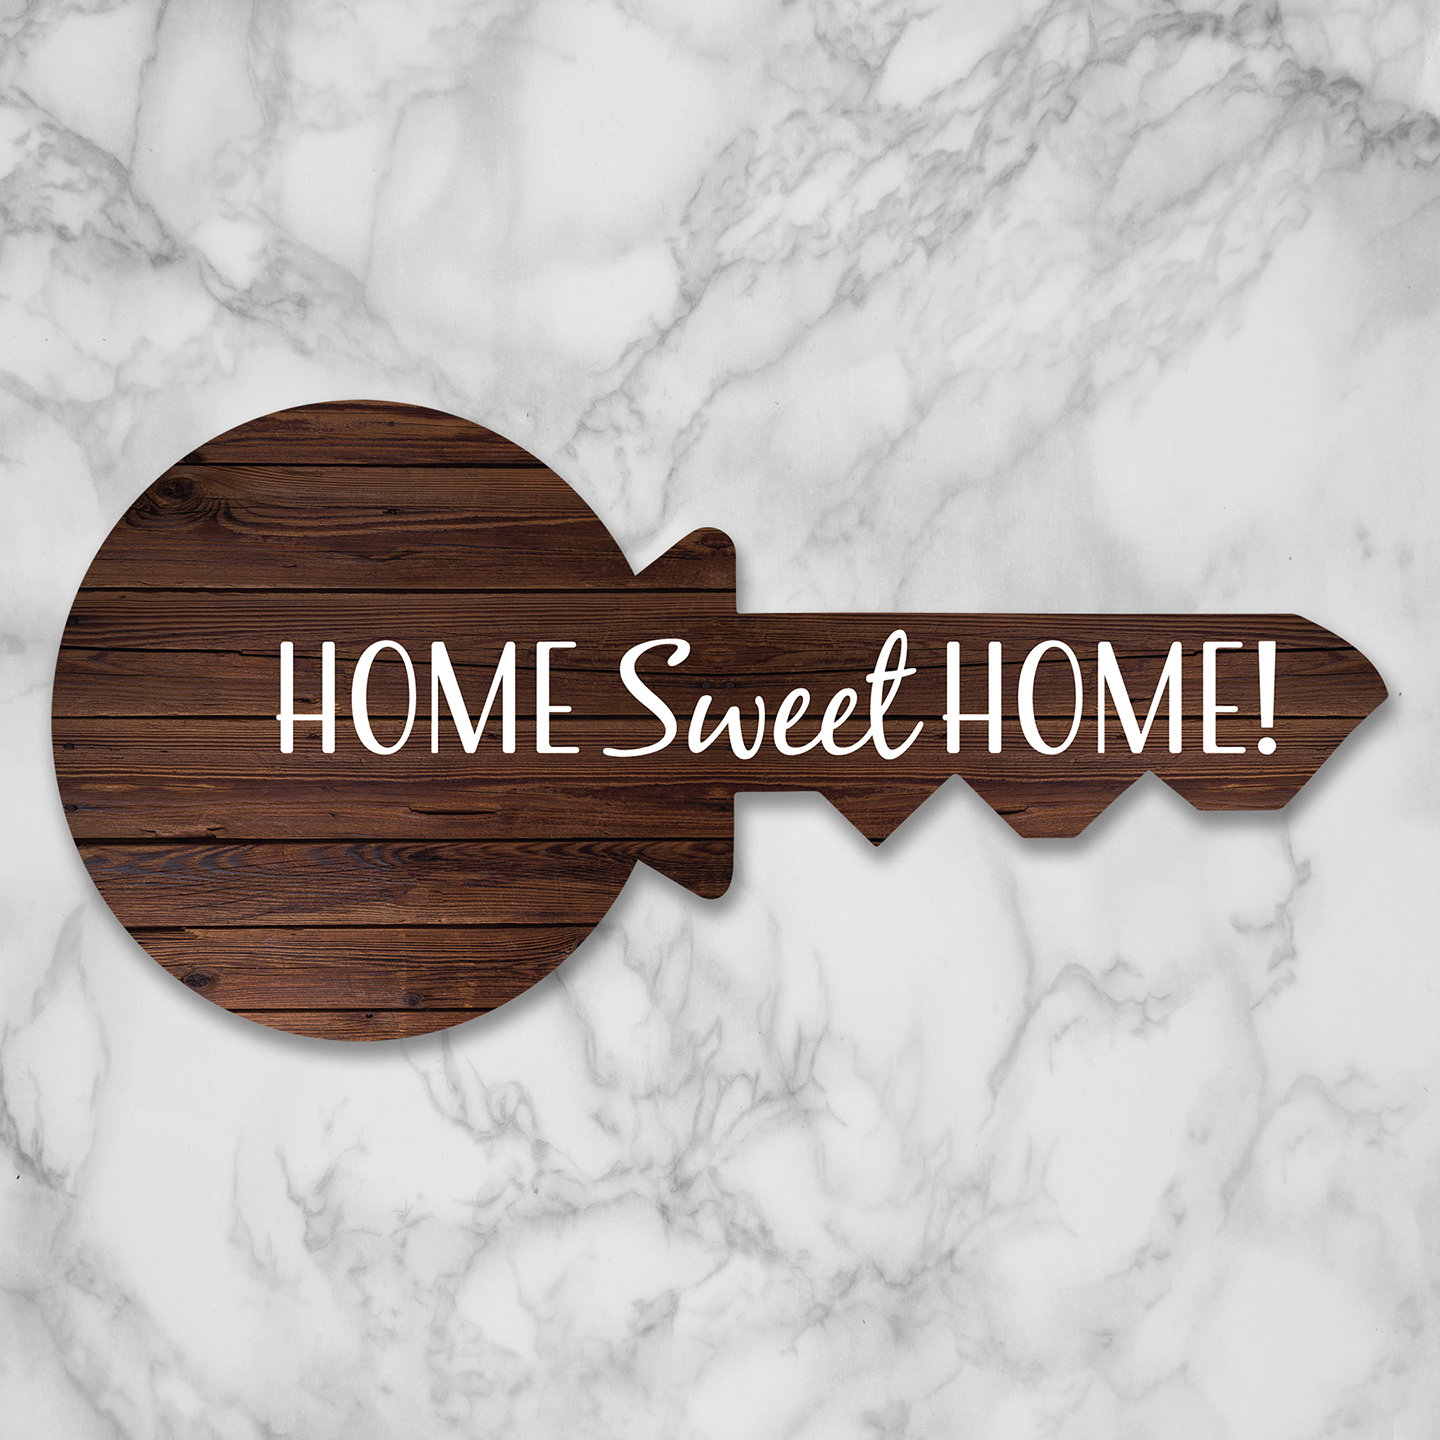 Home Sweet Home Faux Wooden Key Prop